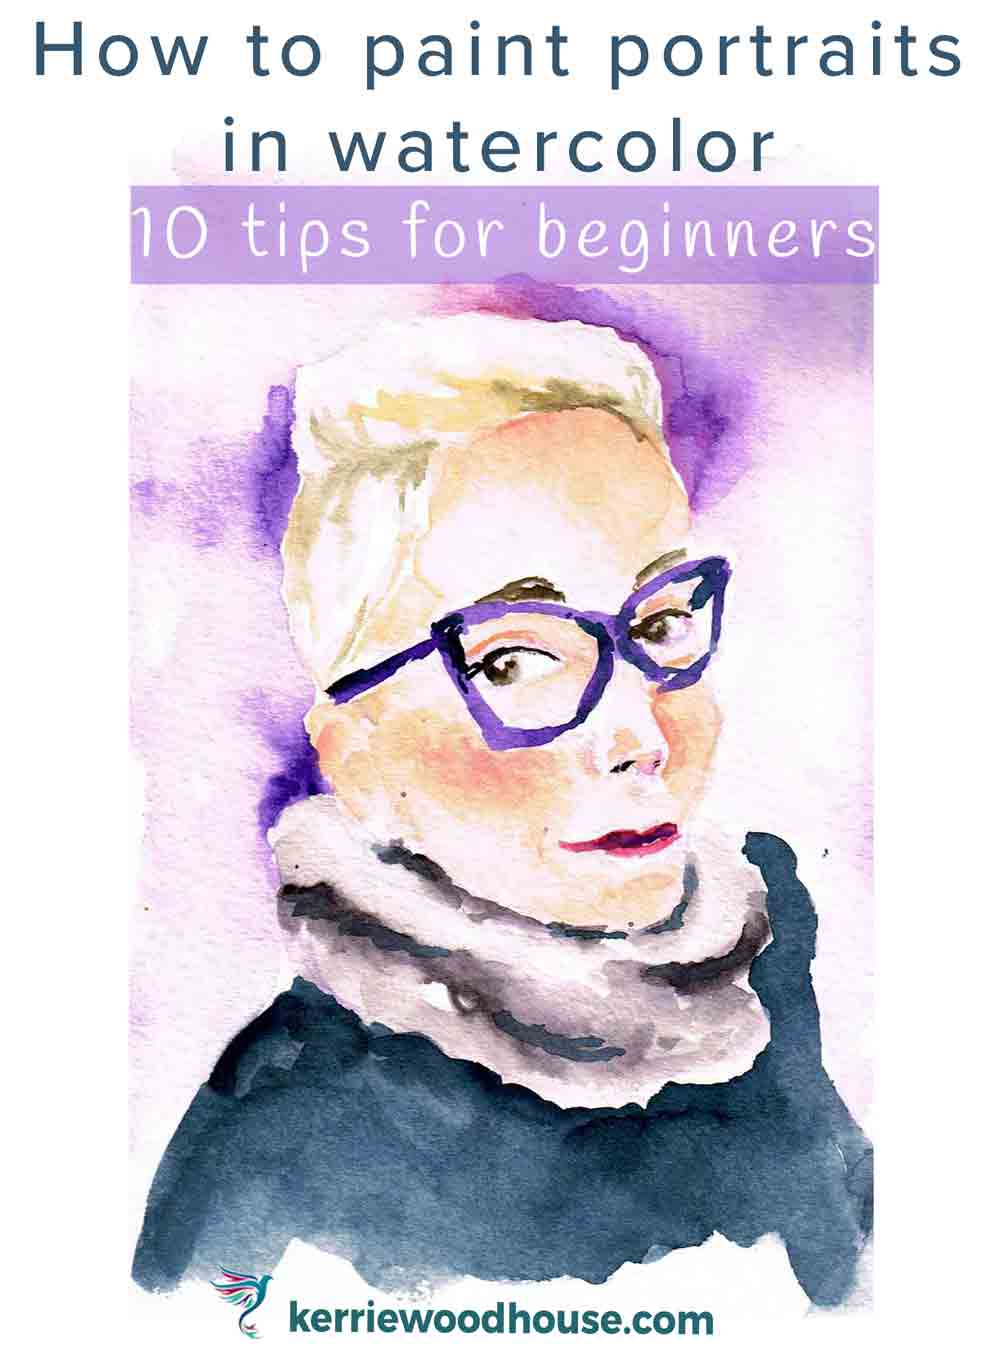 how-to-paint-portraits-in-watercolor-10-tips-for-beginners-kw.jpg